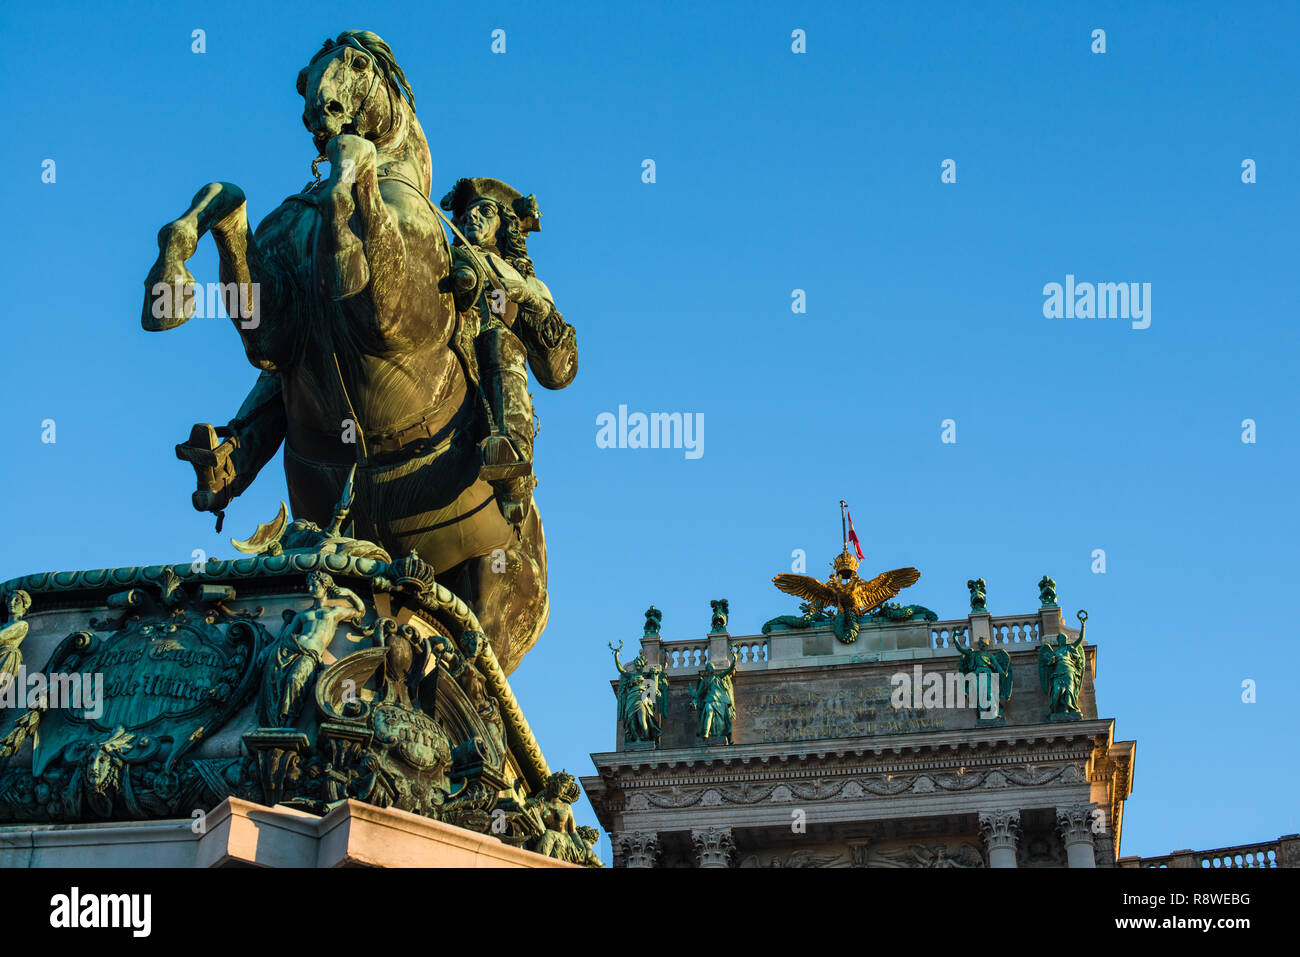 Prince Eugene of Savoy equestrian statue in front of Neue Burg building on Heldenplatz in Hofburg palace complex. - Stock Image